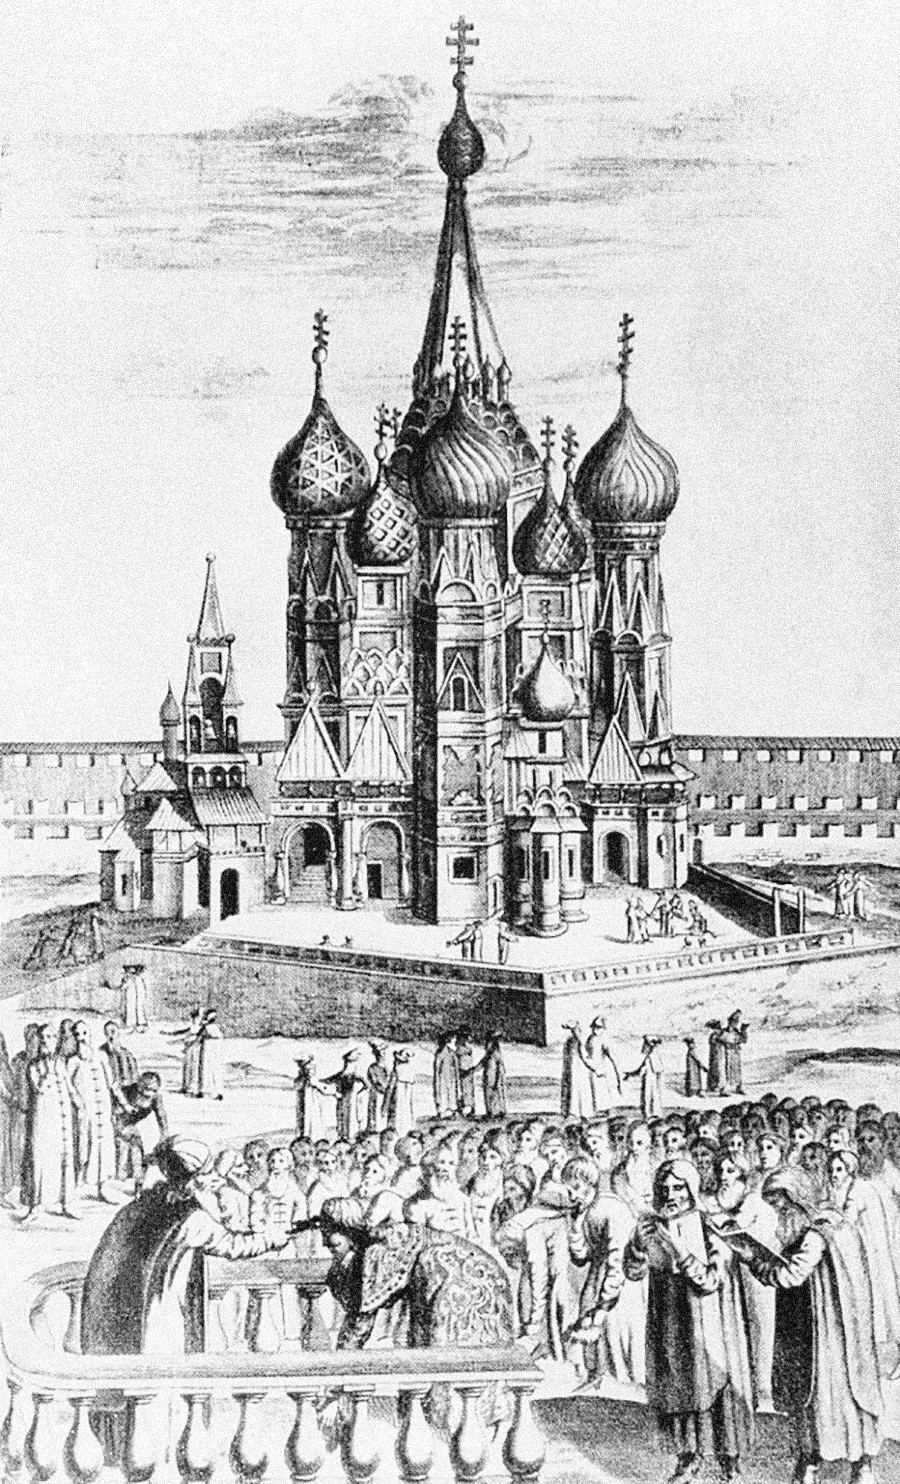 A 17th-century view of the St. Basil's Cathedral in Moscow. Woodcut, 1634.